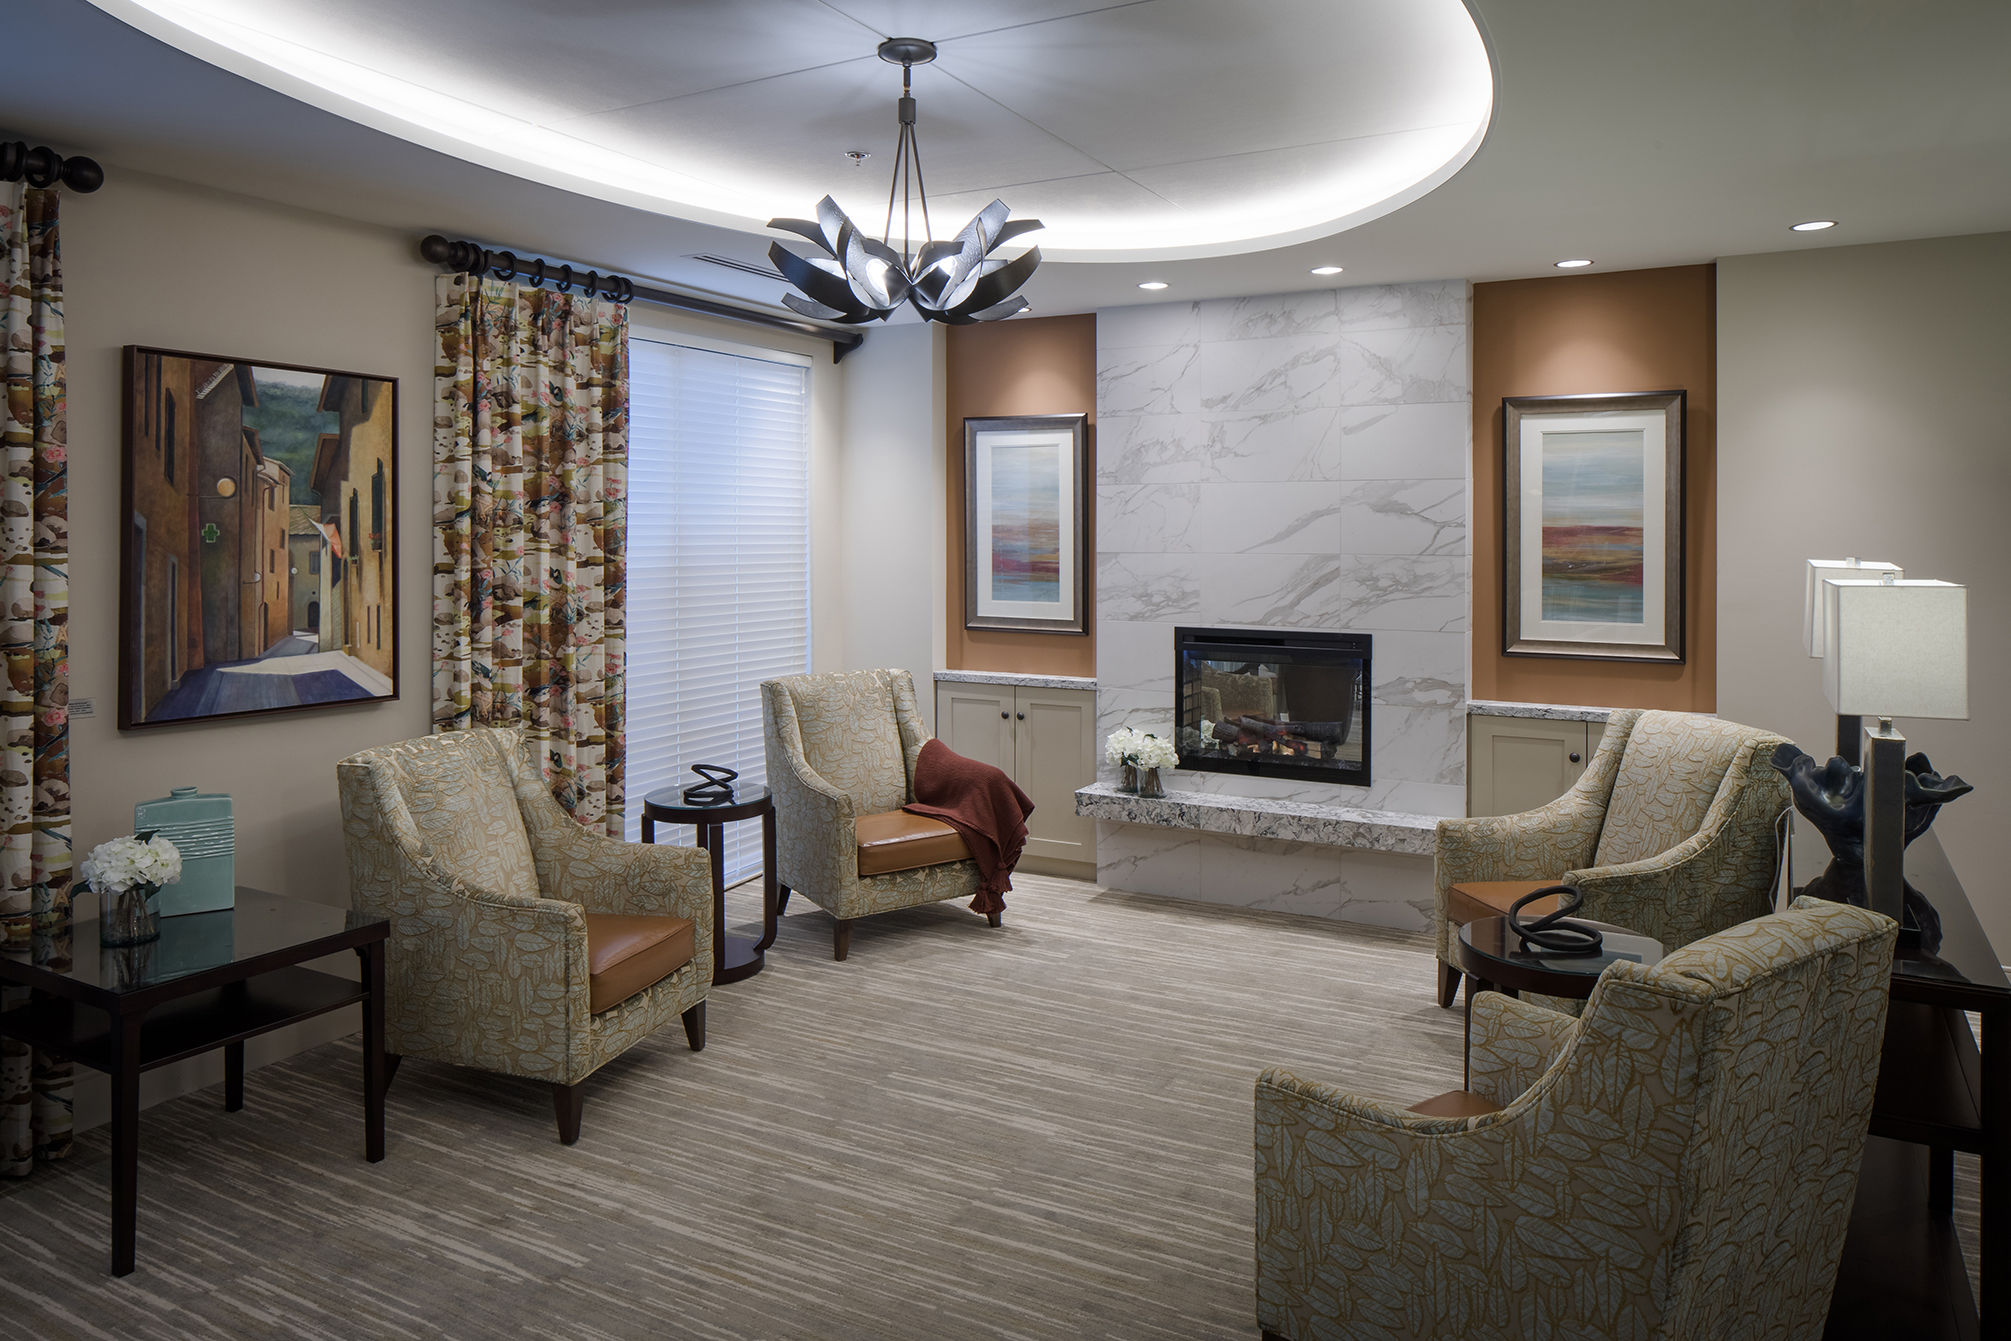 Revitz House Social Area Charles e Smith Jewish Senior Living Designer THW